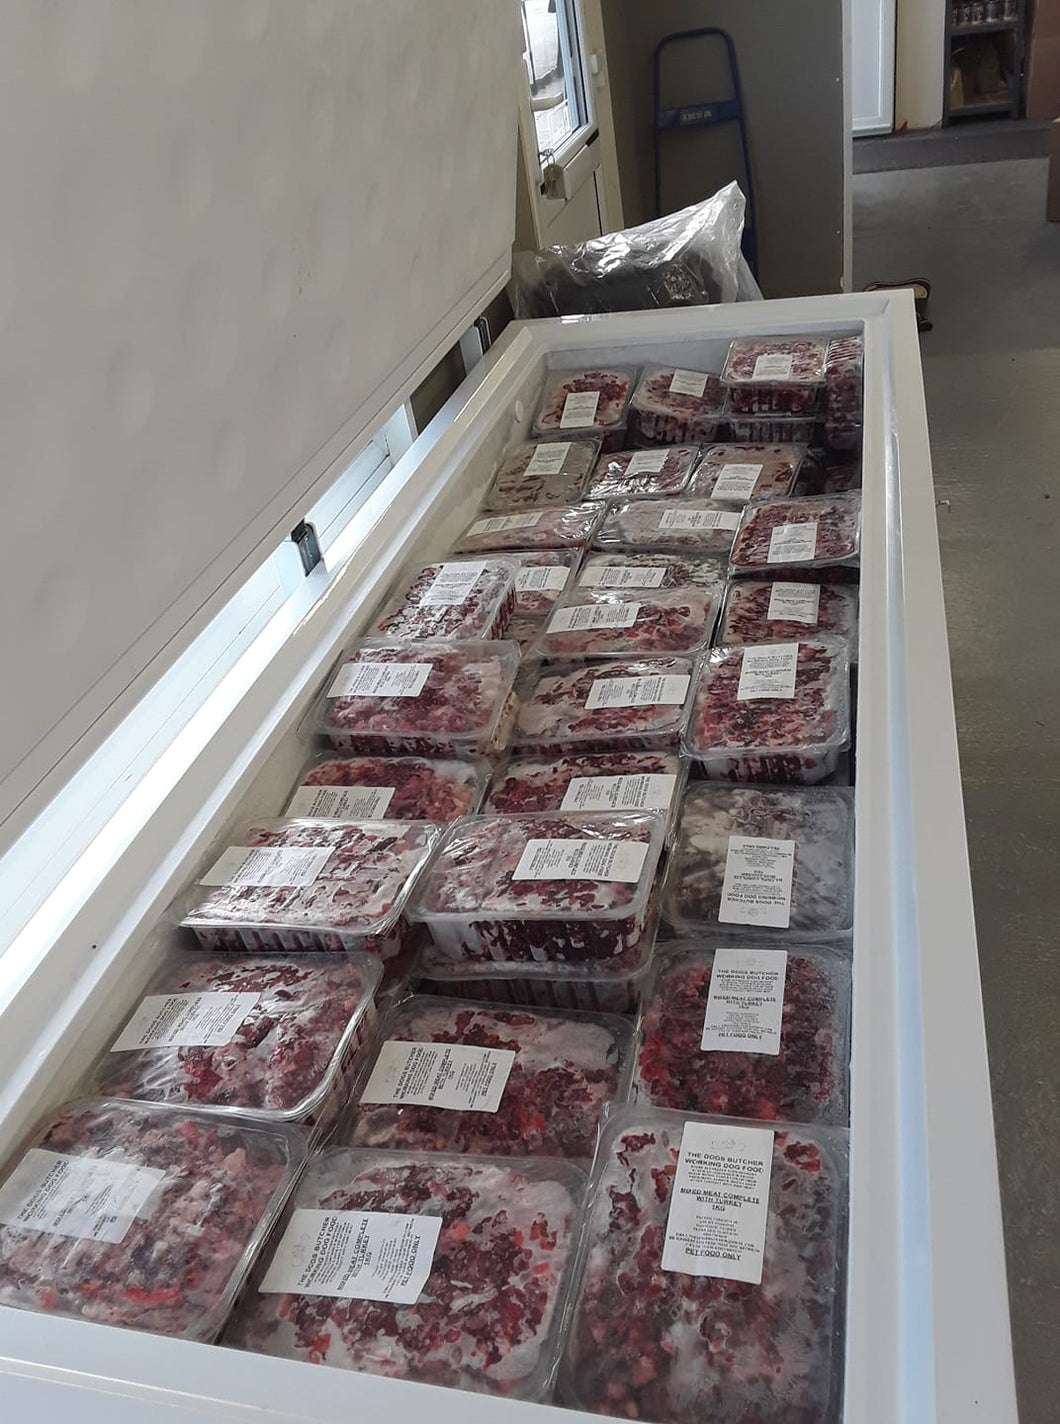 The Dog's Butcher. Lamb, fish and turkey 80/10/10 1kg